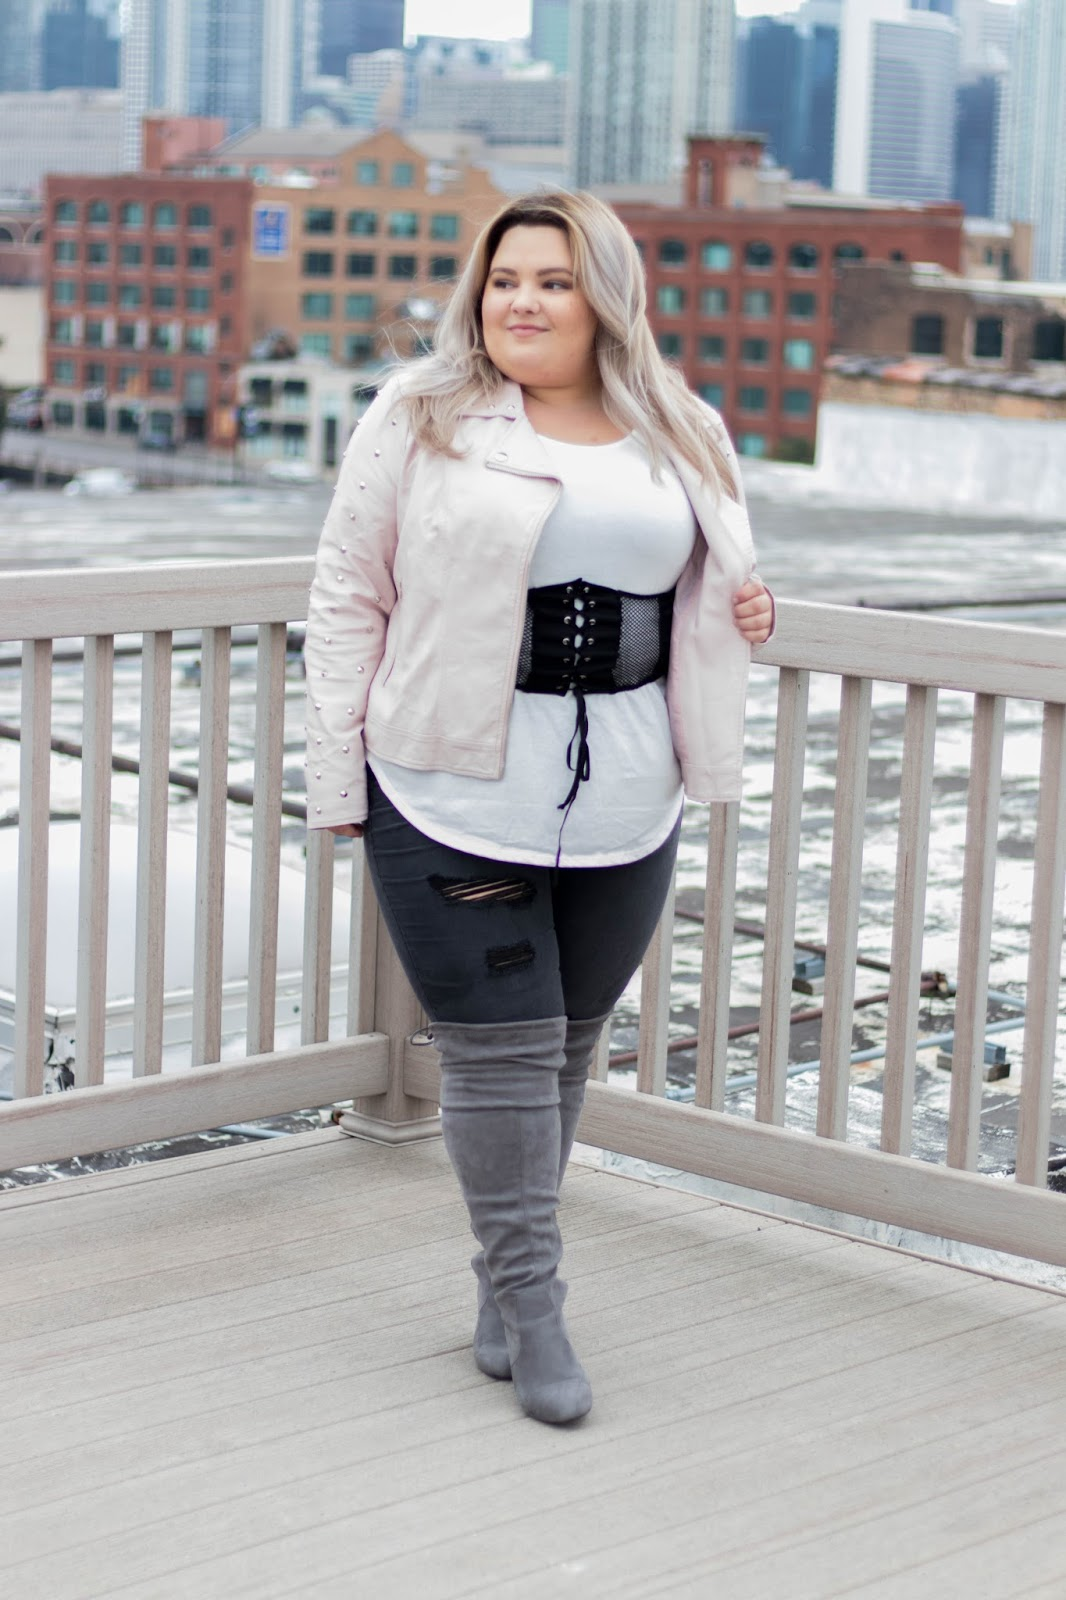 natalie in the city, natalie Craig, plus size fashion blogger, Chicago plus size fashion blogger, body positive, Charlotte Russe, affordable plus size clothes, wide calf knee high boots, wide boots, plus size boots, wide calf, curves and confidence, refinery 29, the 67 percent project, plus size dating, Chicago, Chicago fashion, Chicago skyline